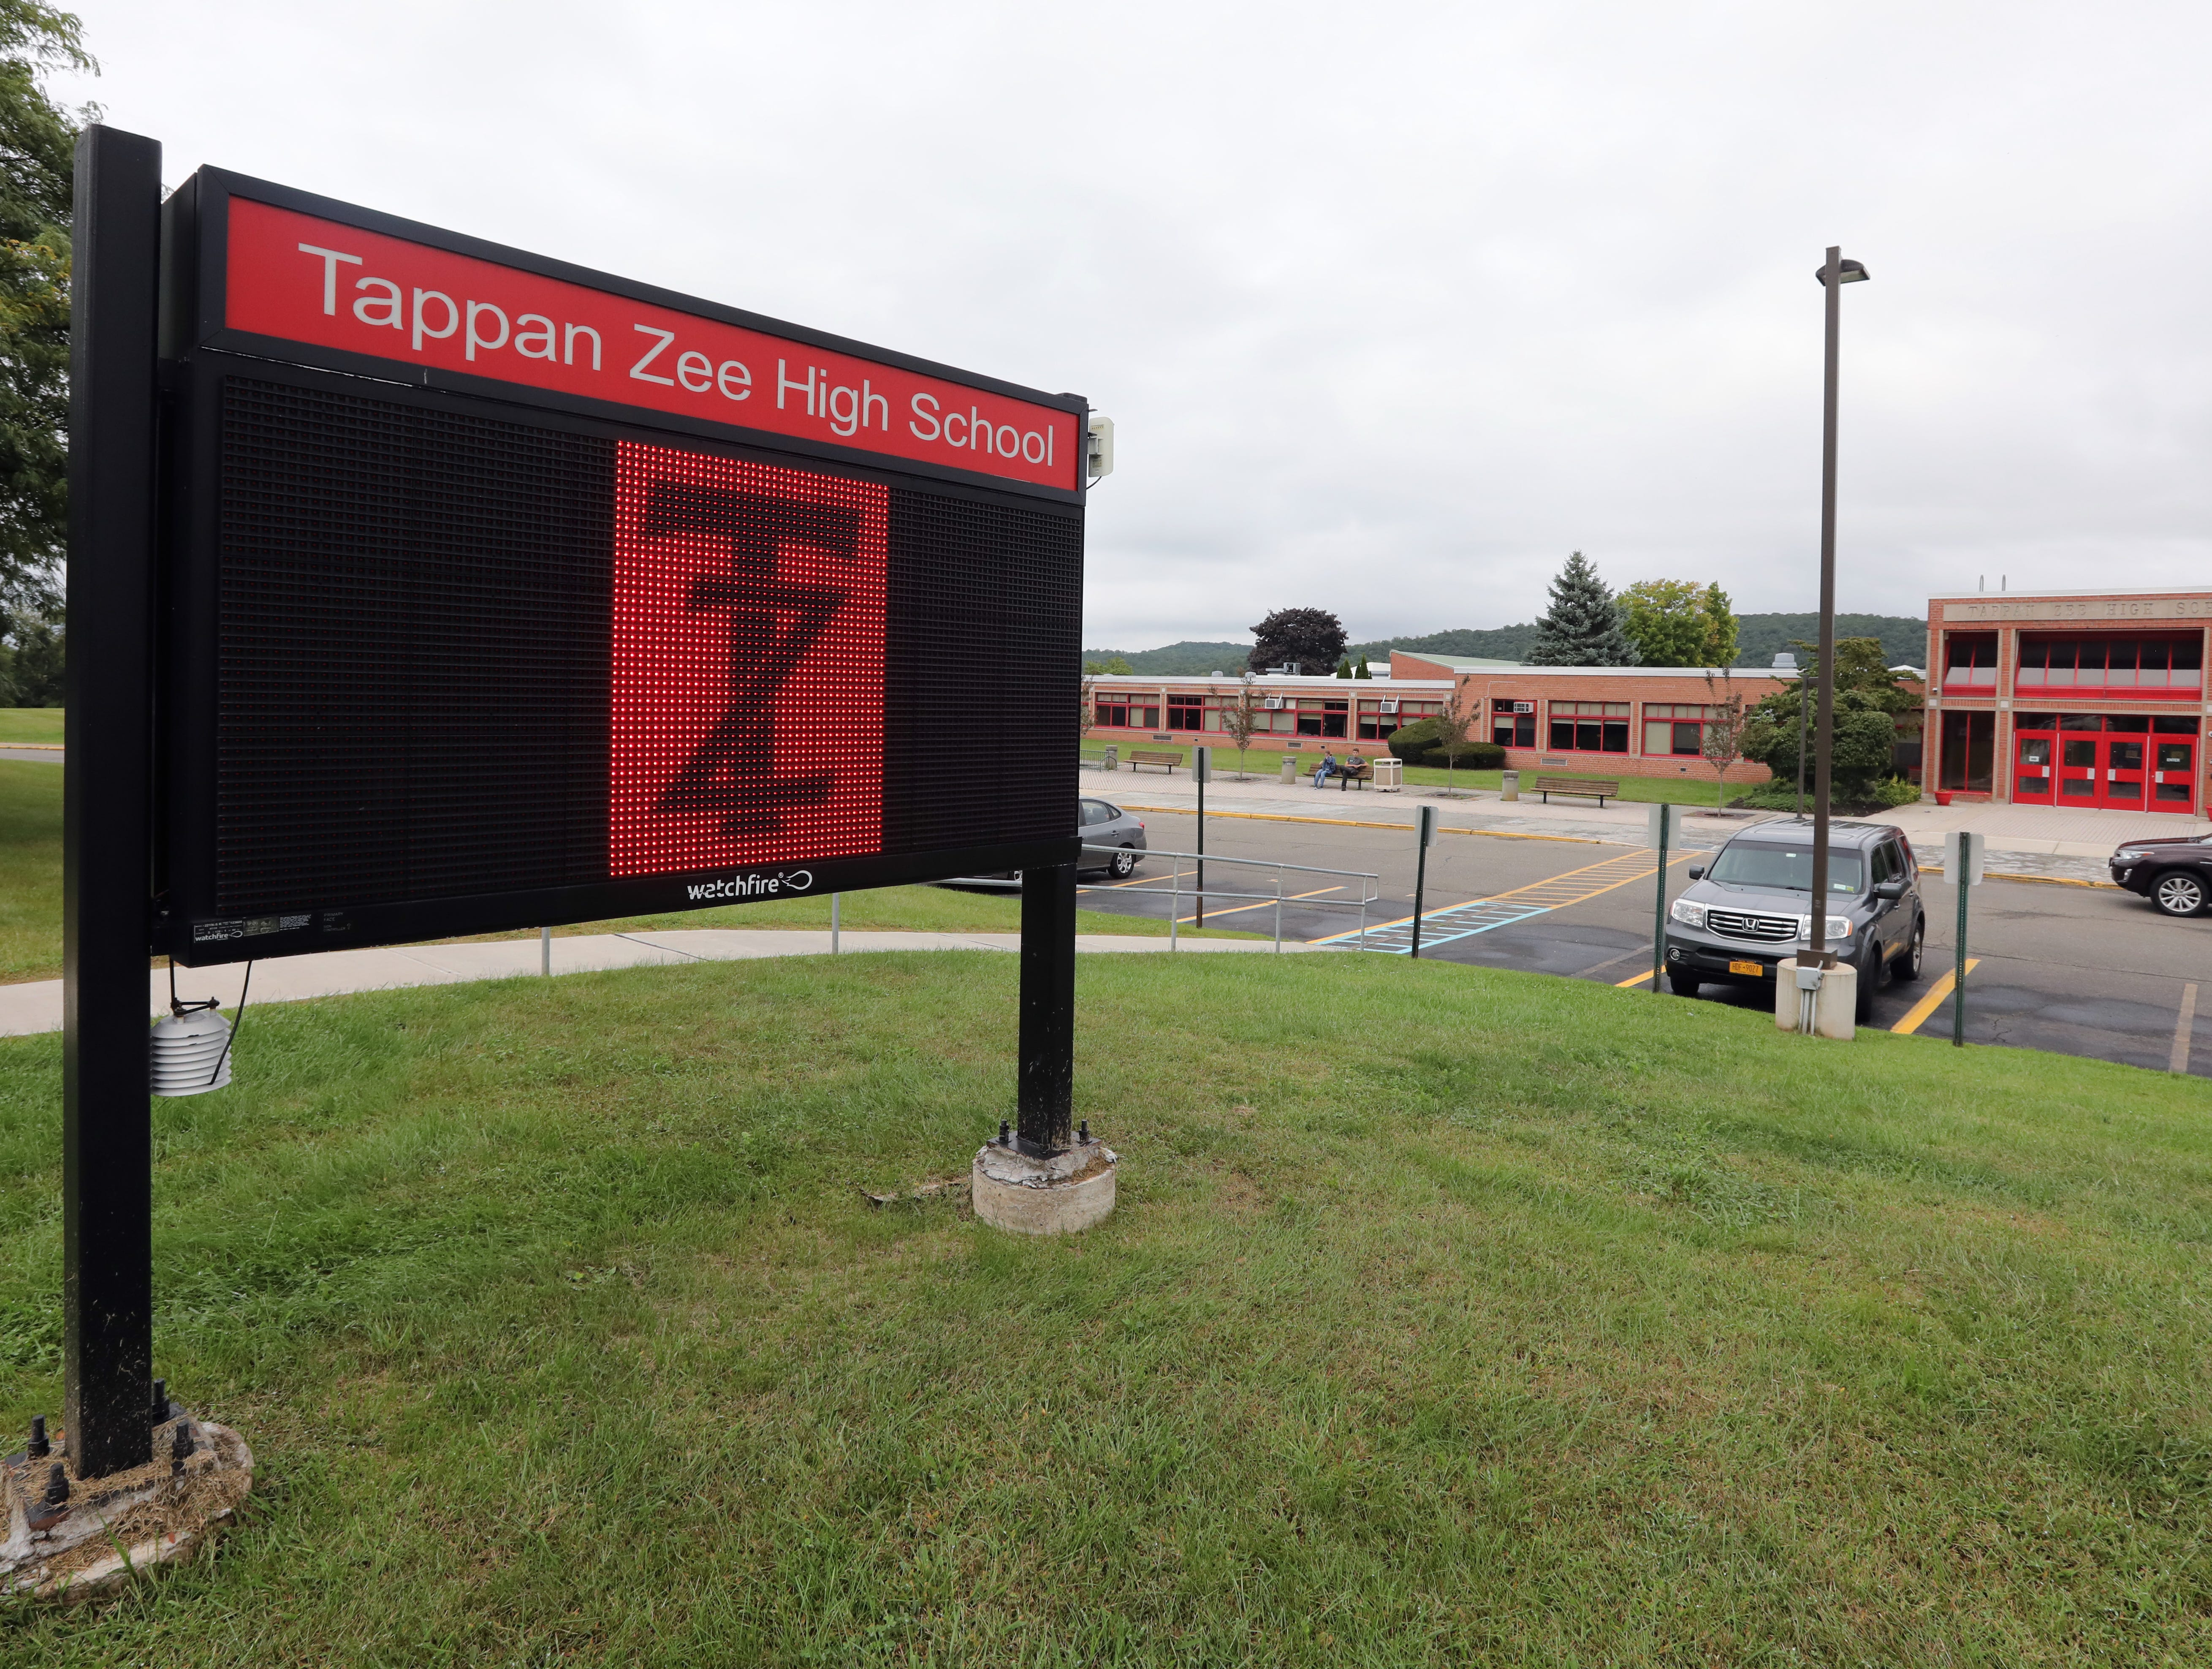 Tappan Zee High School in Orangeburg Sept. 12, 2018.